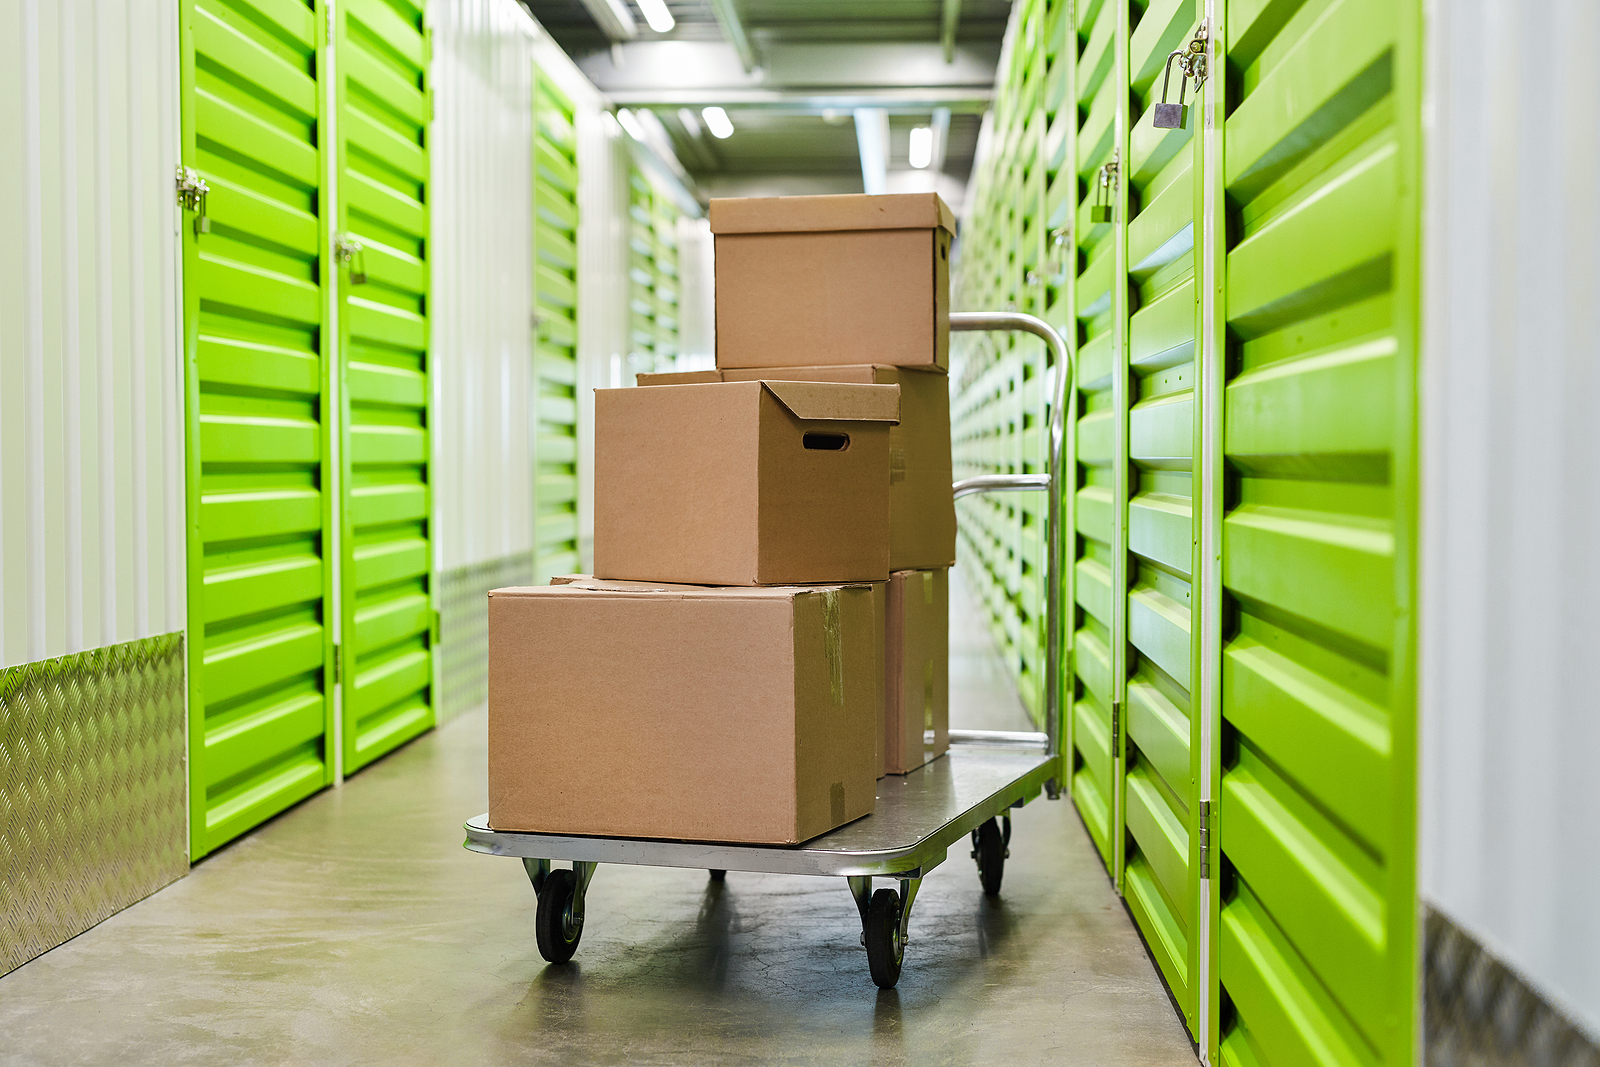 Top 5 Reasons to Invest in a Self Storage Business